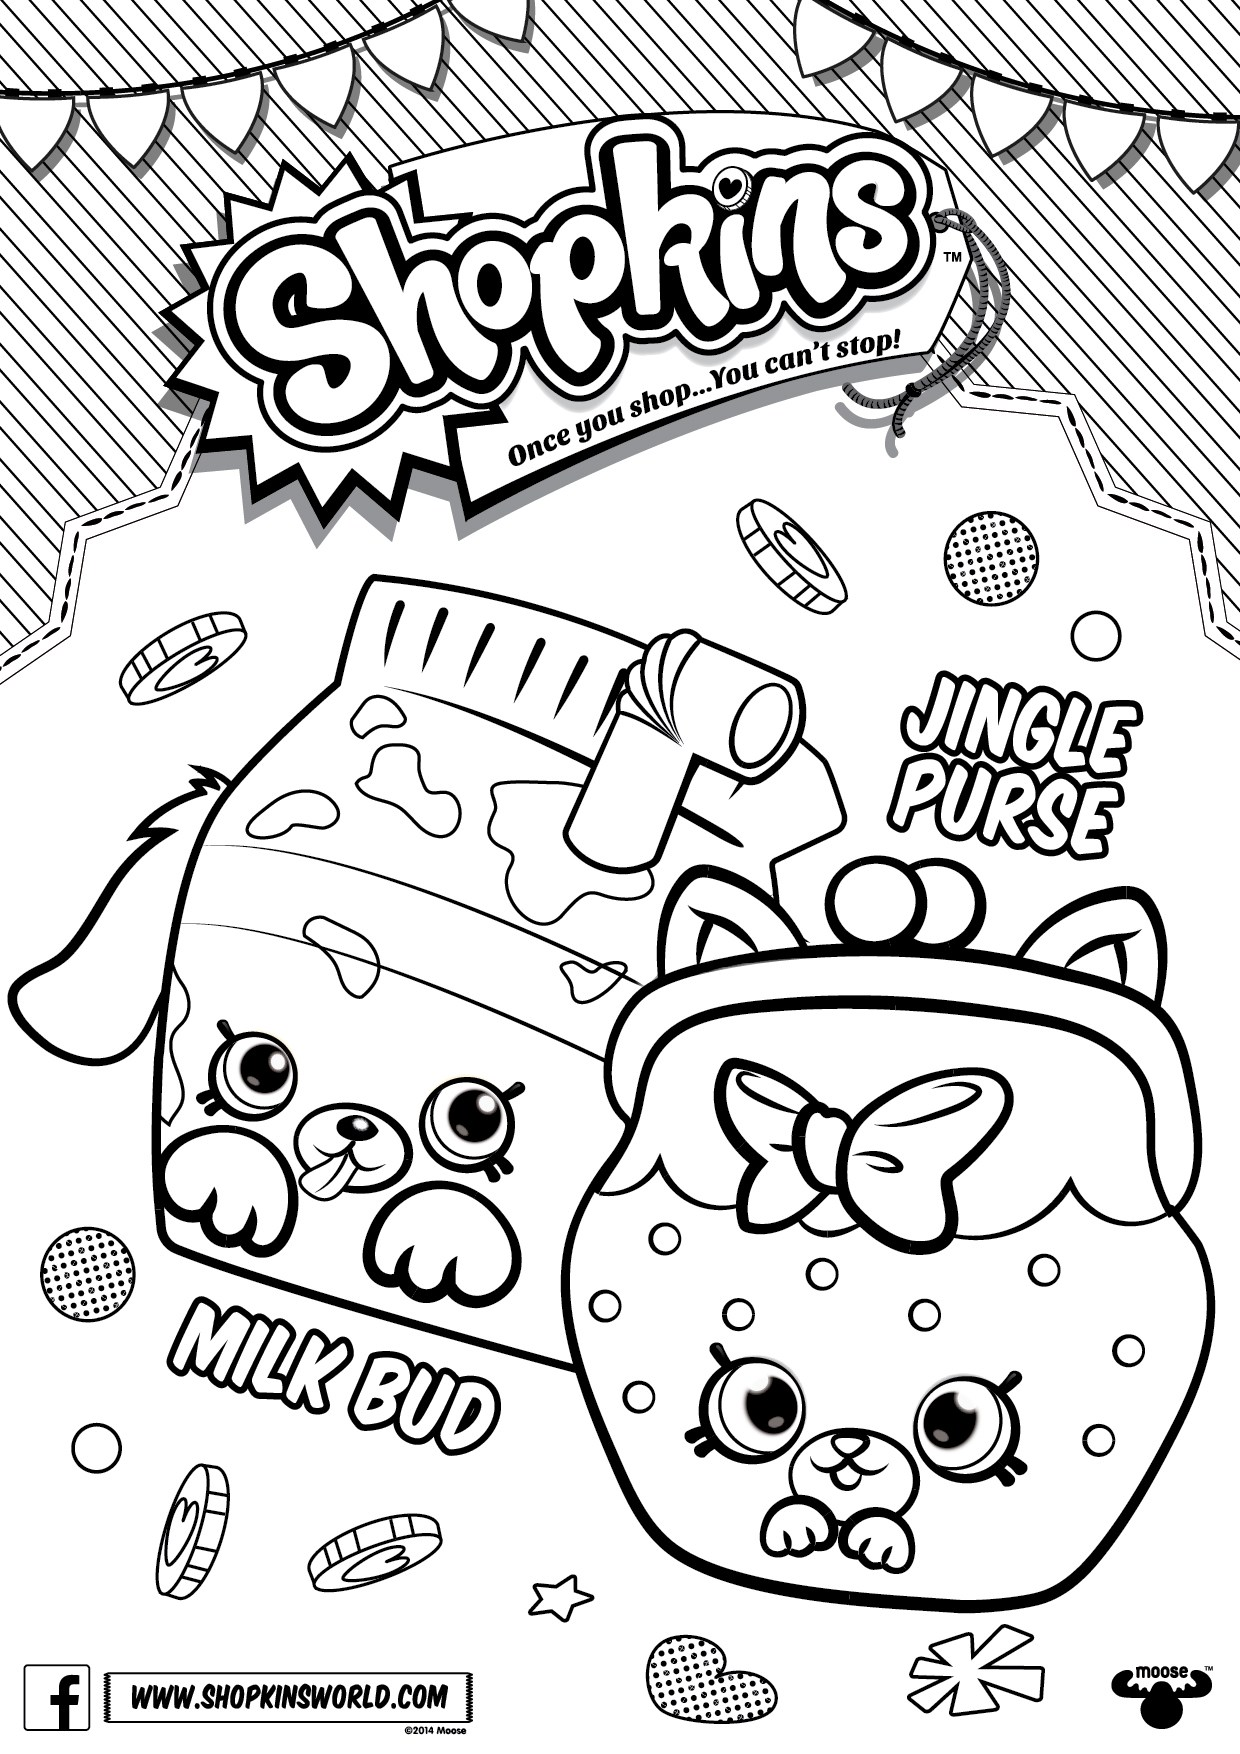 1240x1754 Inspiration Coloring Pages U Can Print New Shopkin Coloring Pages